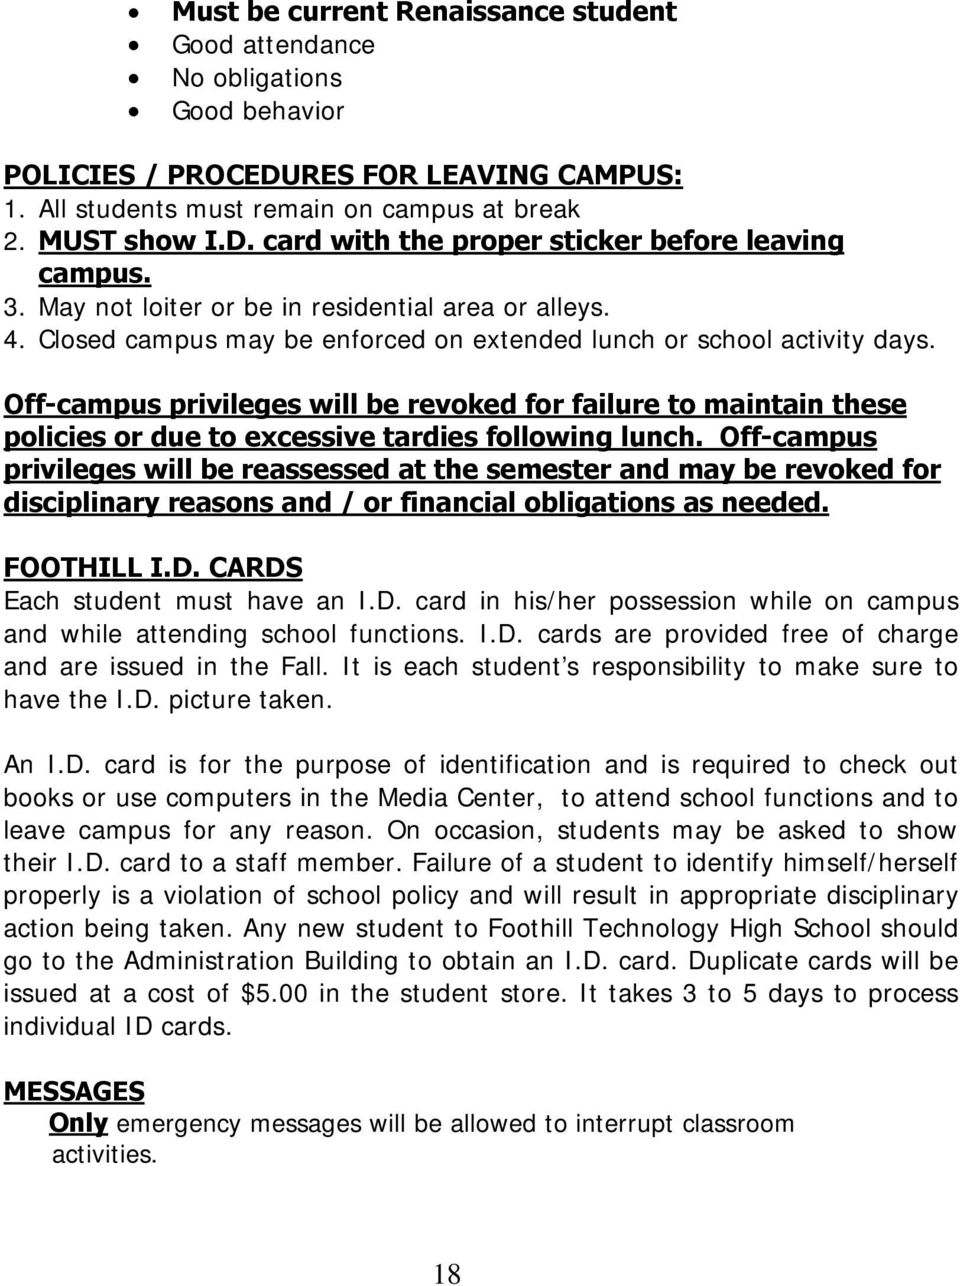 Off-campus privileges will be revoked for failure to maintain these policies or due to excessive tardies following lunch.